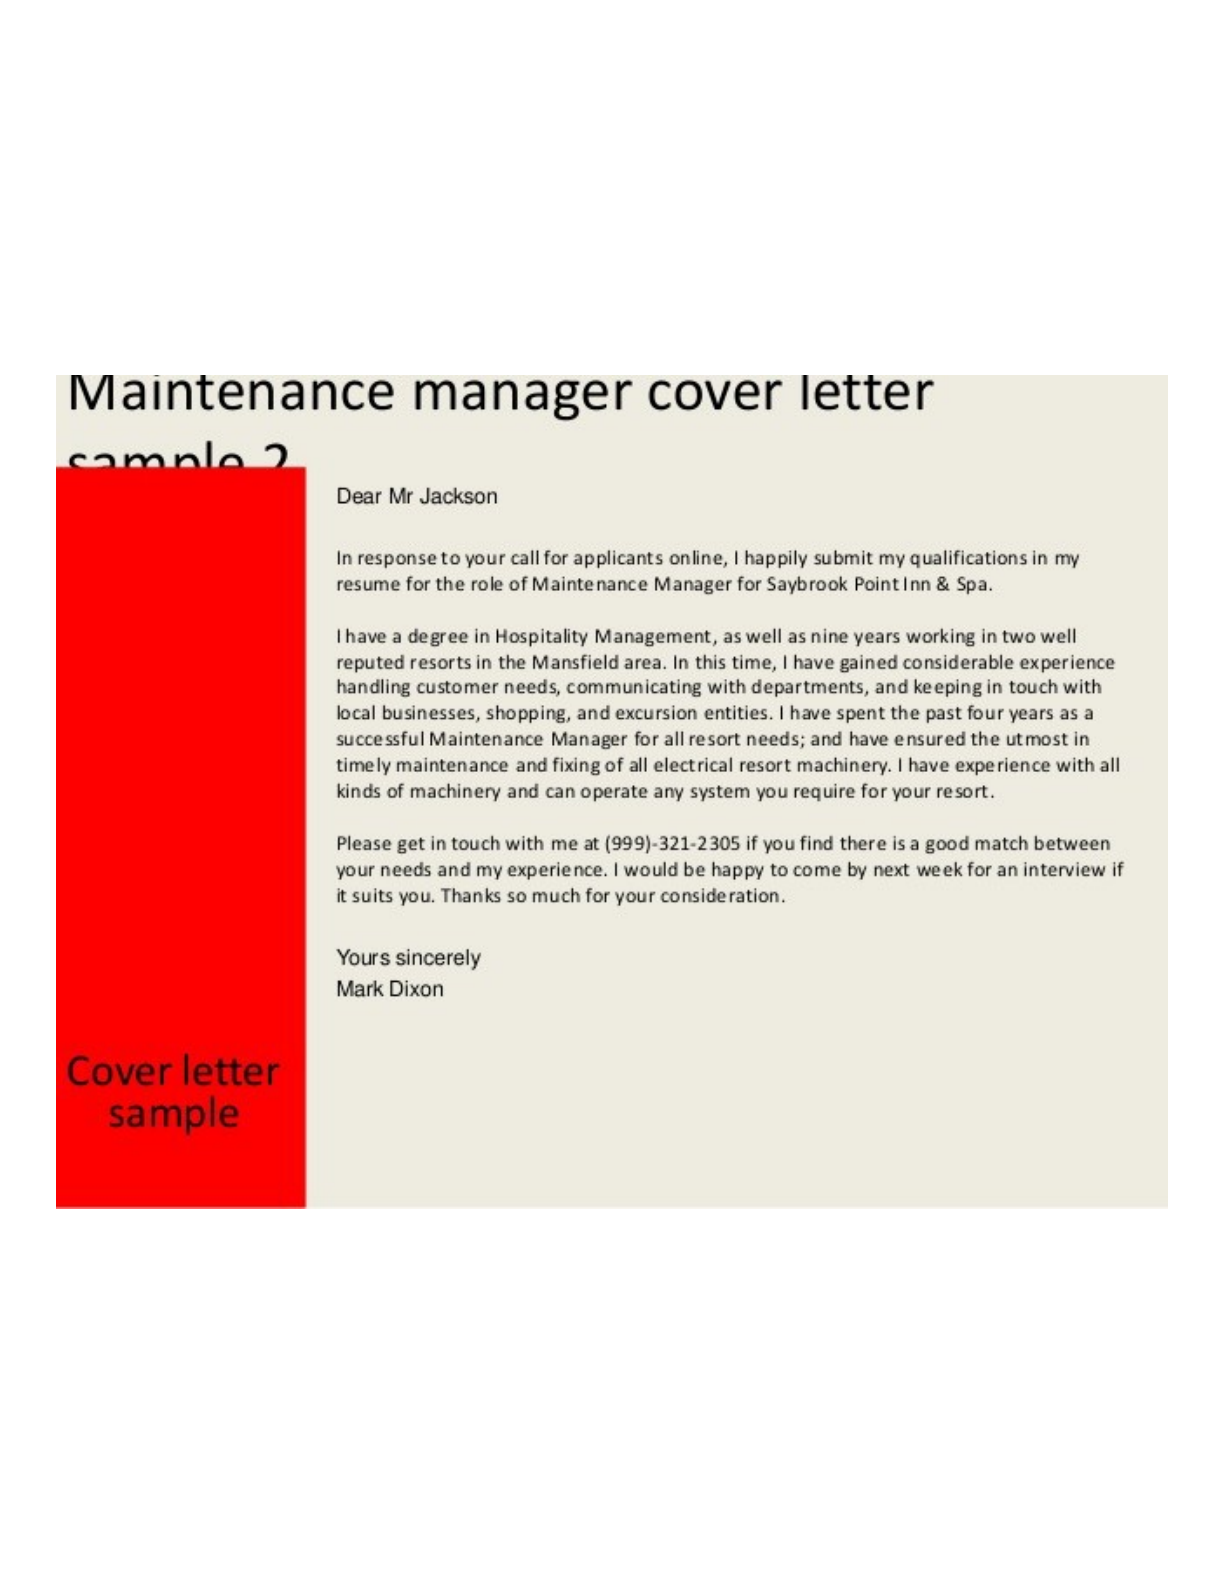 applying for management position cover letter - preventive maintenance manager cover letter samples and